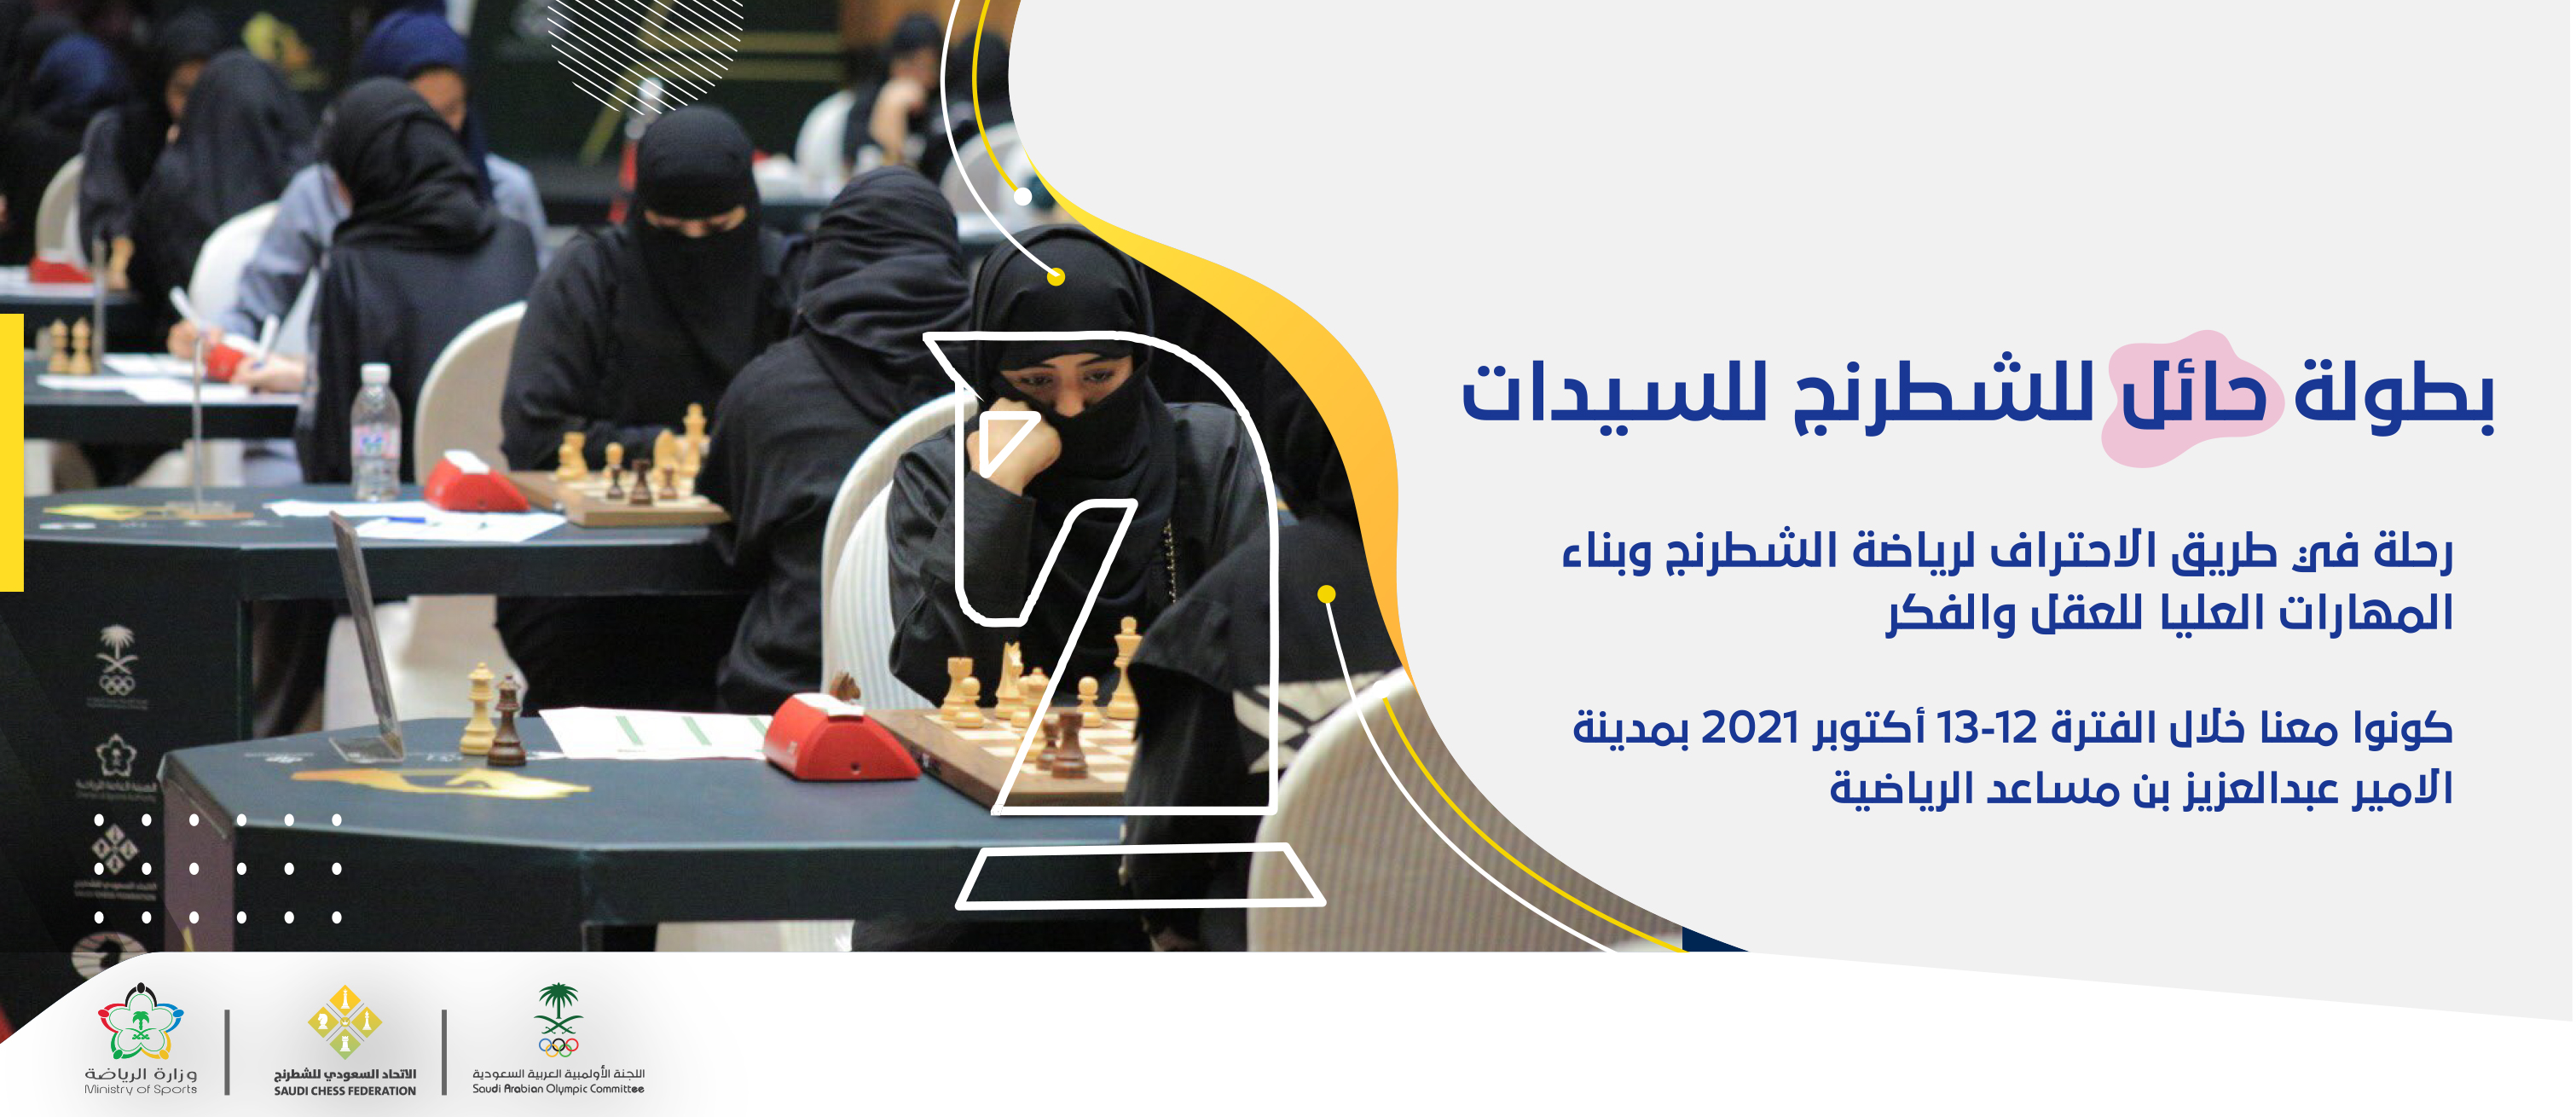 chess-hail-2021-event-poster